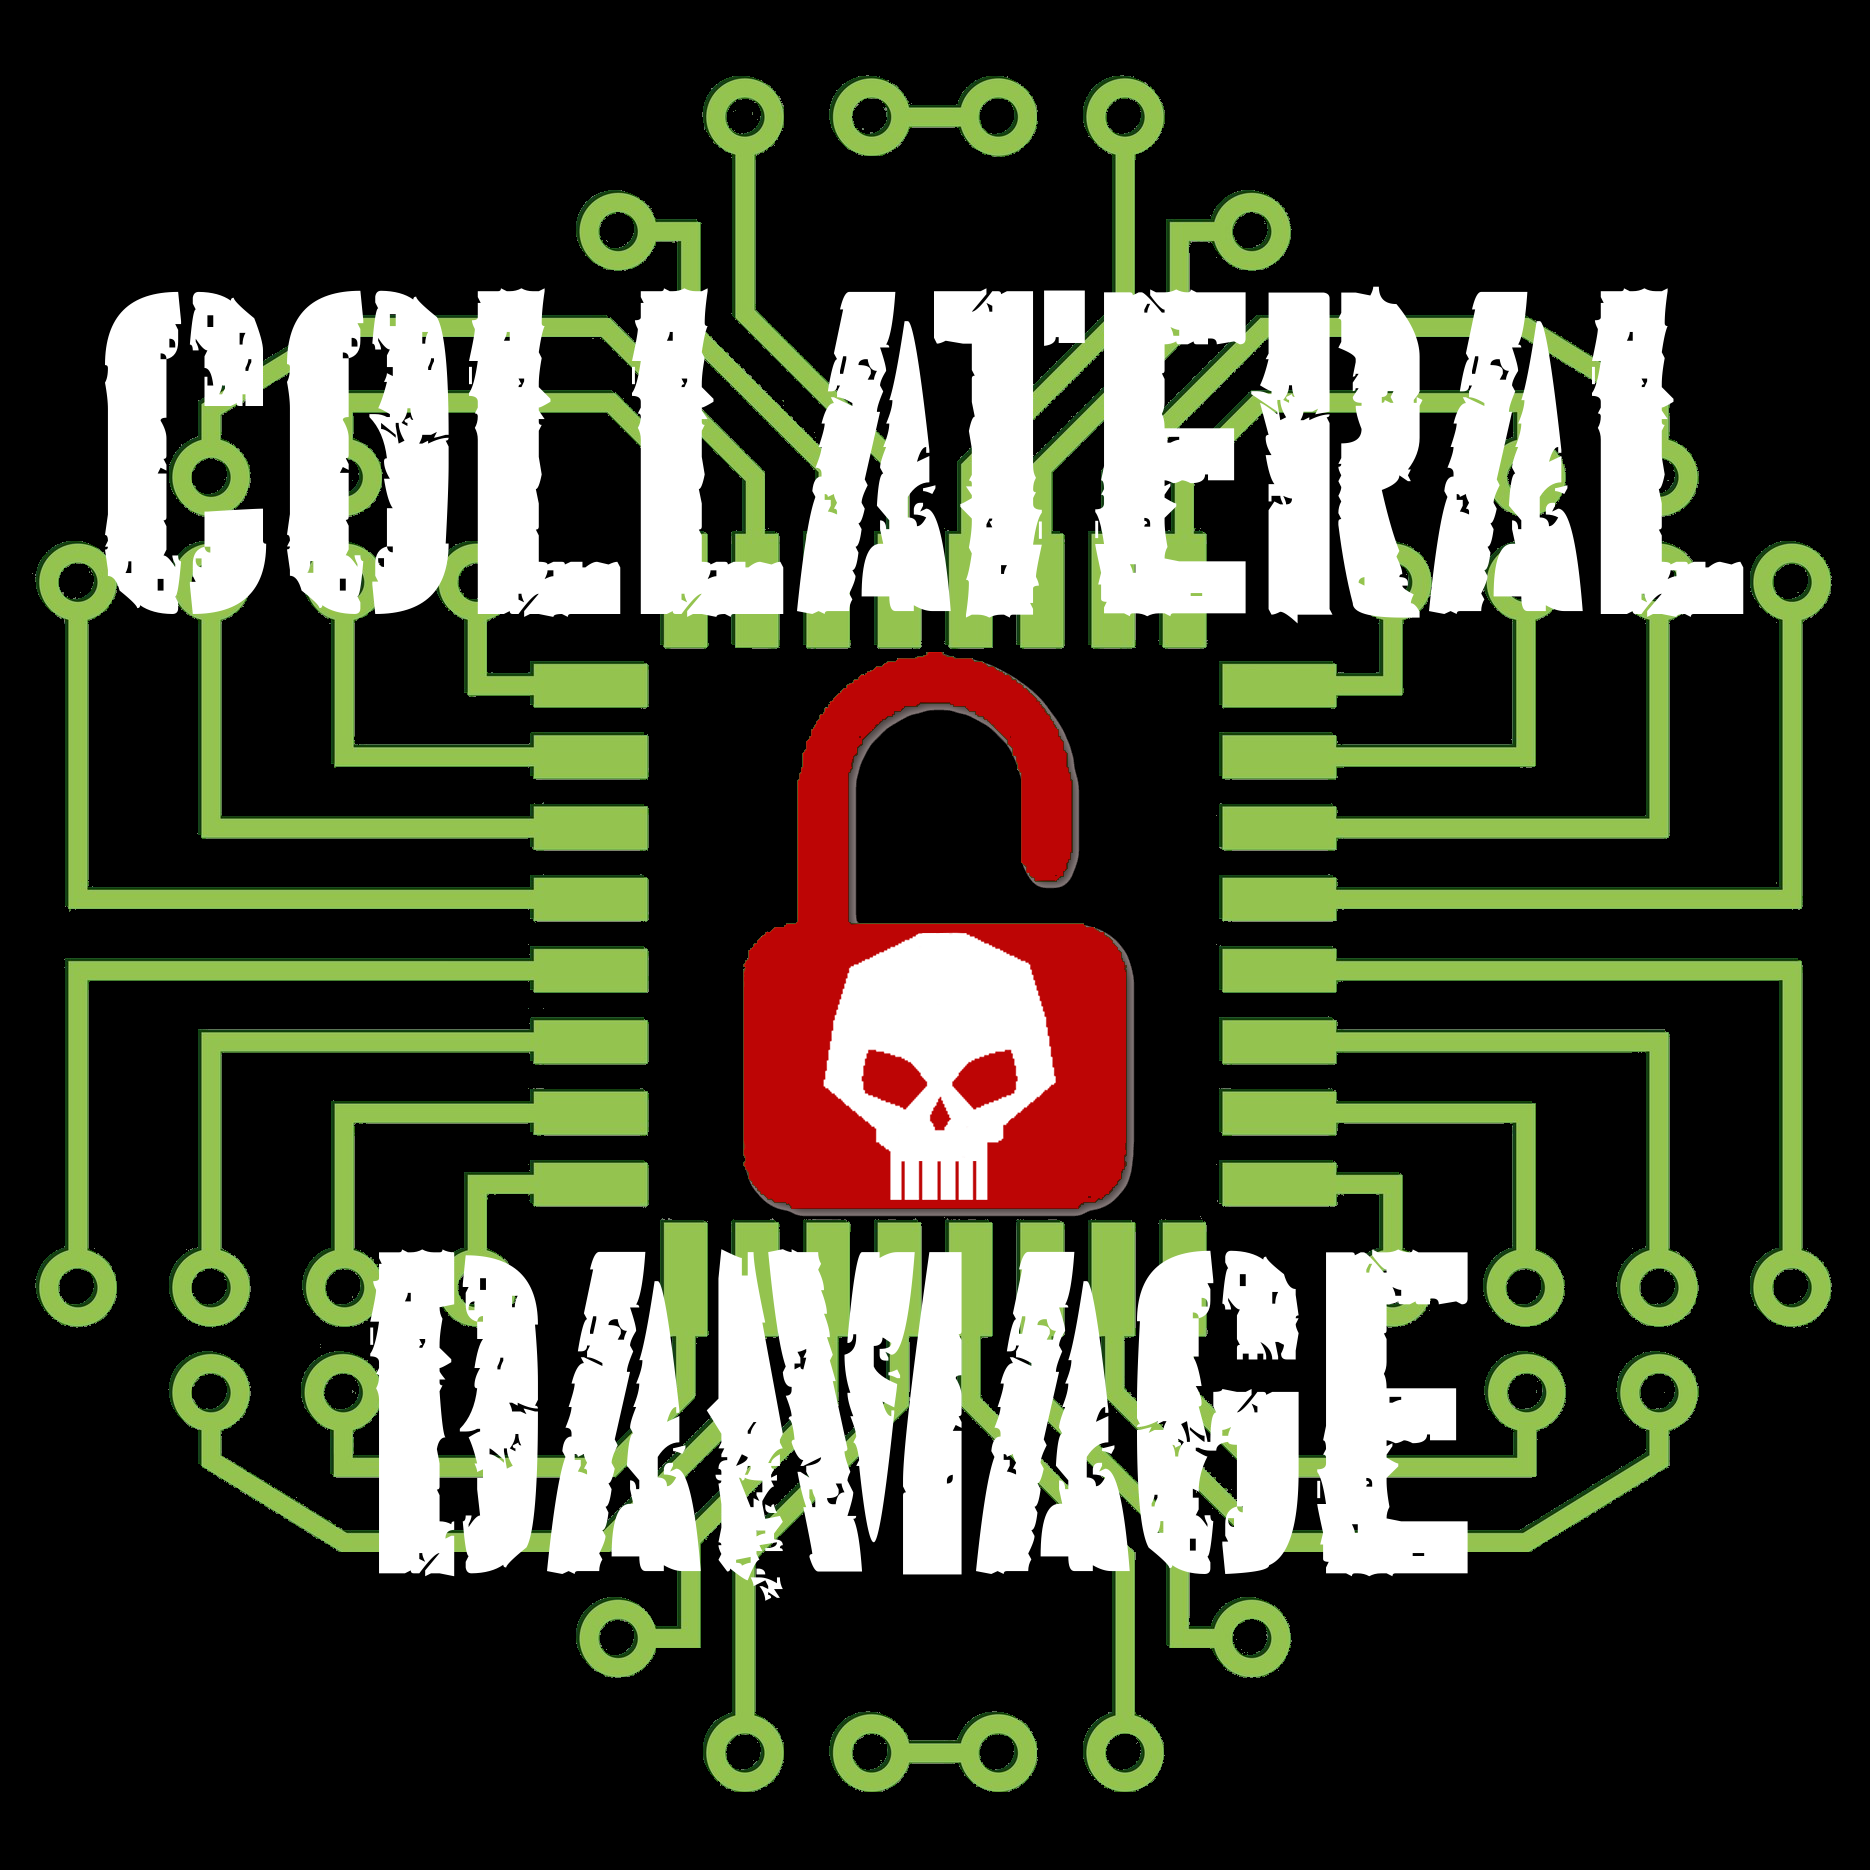 Benefits Professionals: Avoid Becoming 'Collateral Damage' in a Cyberattack